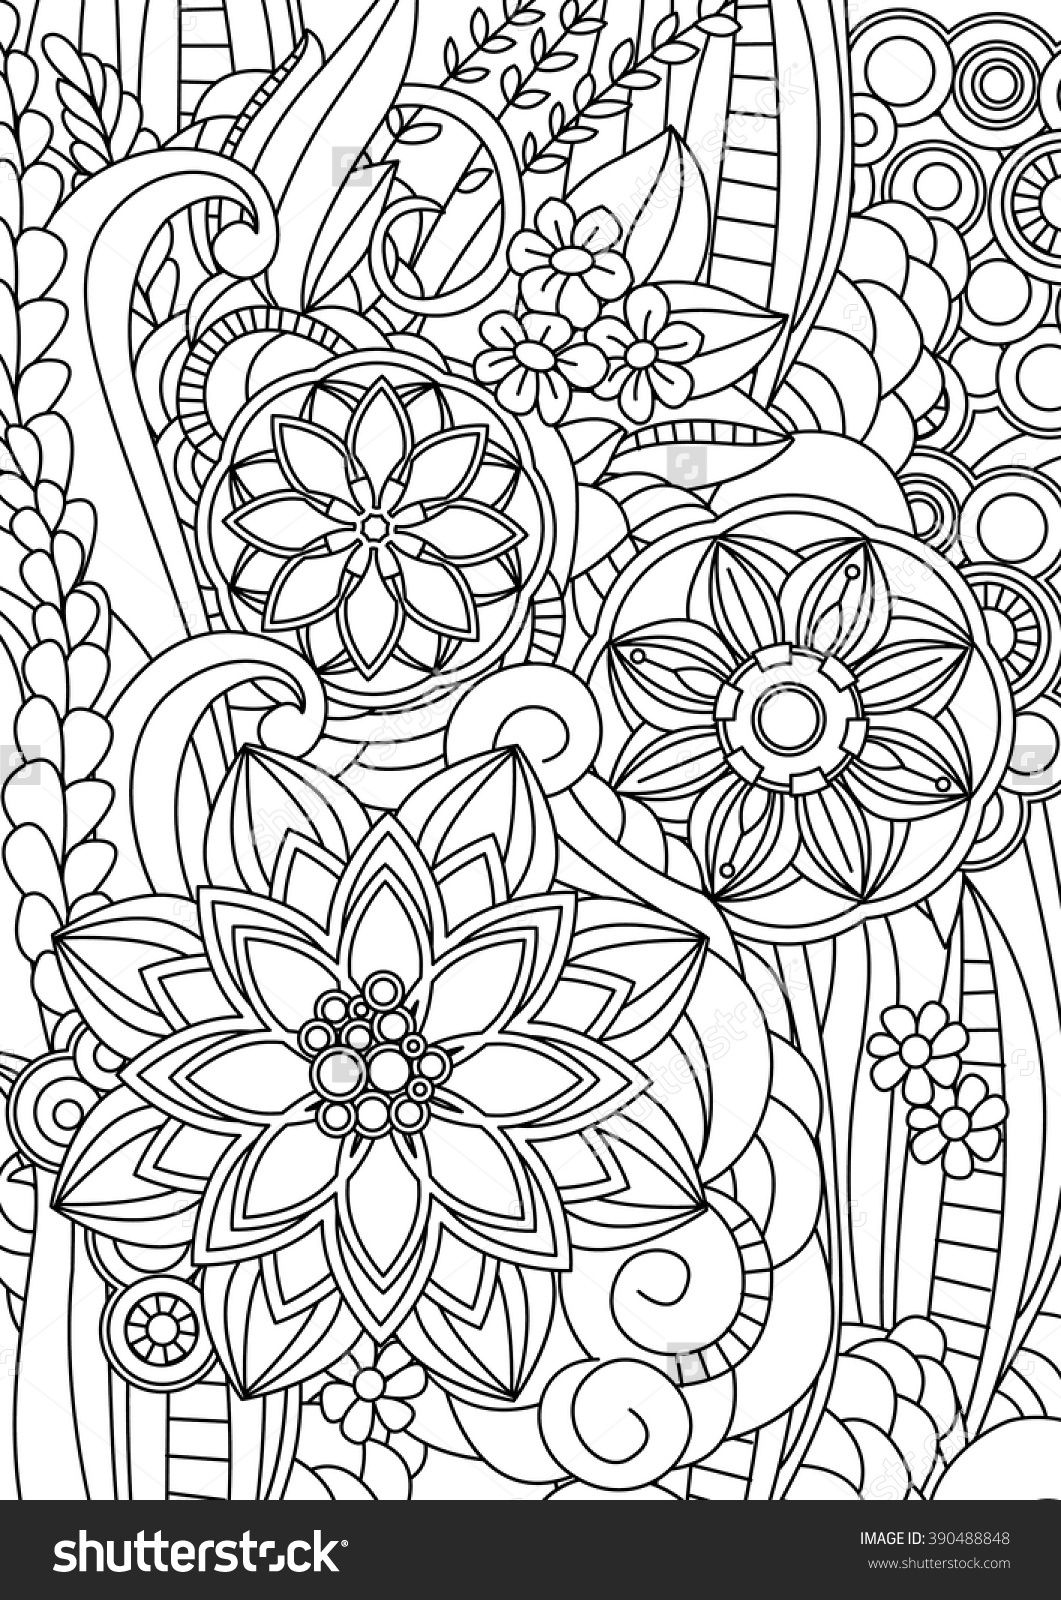 magic garden floral coloring page for relaxation